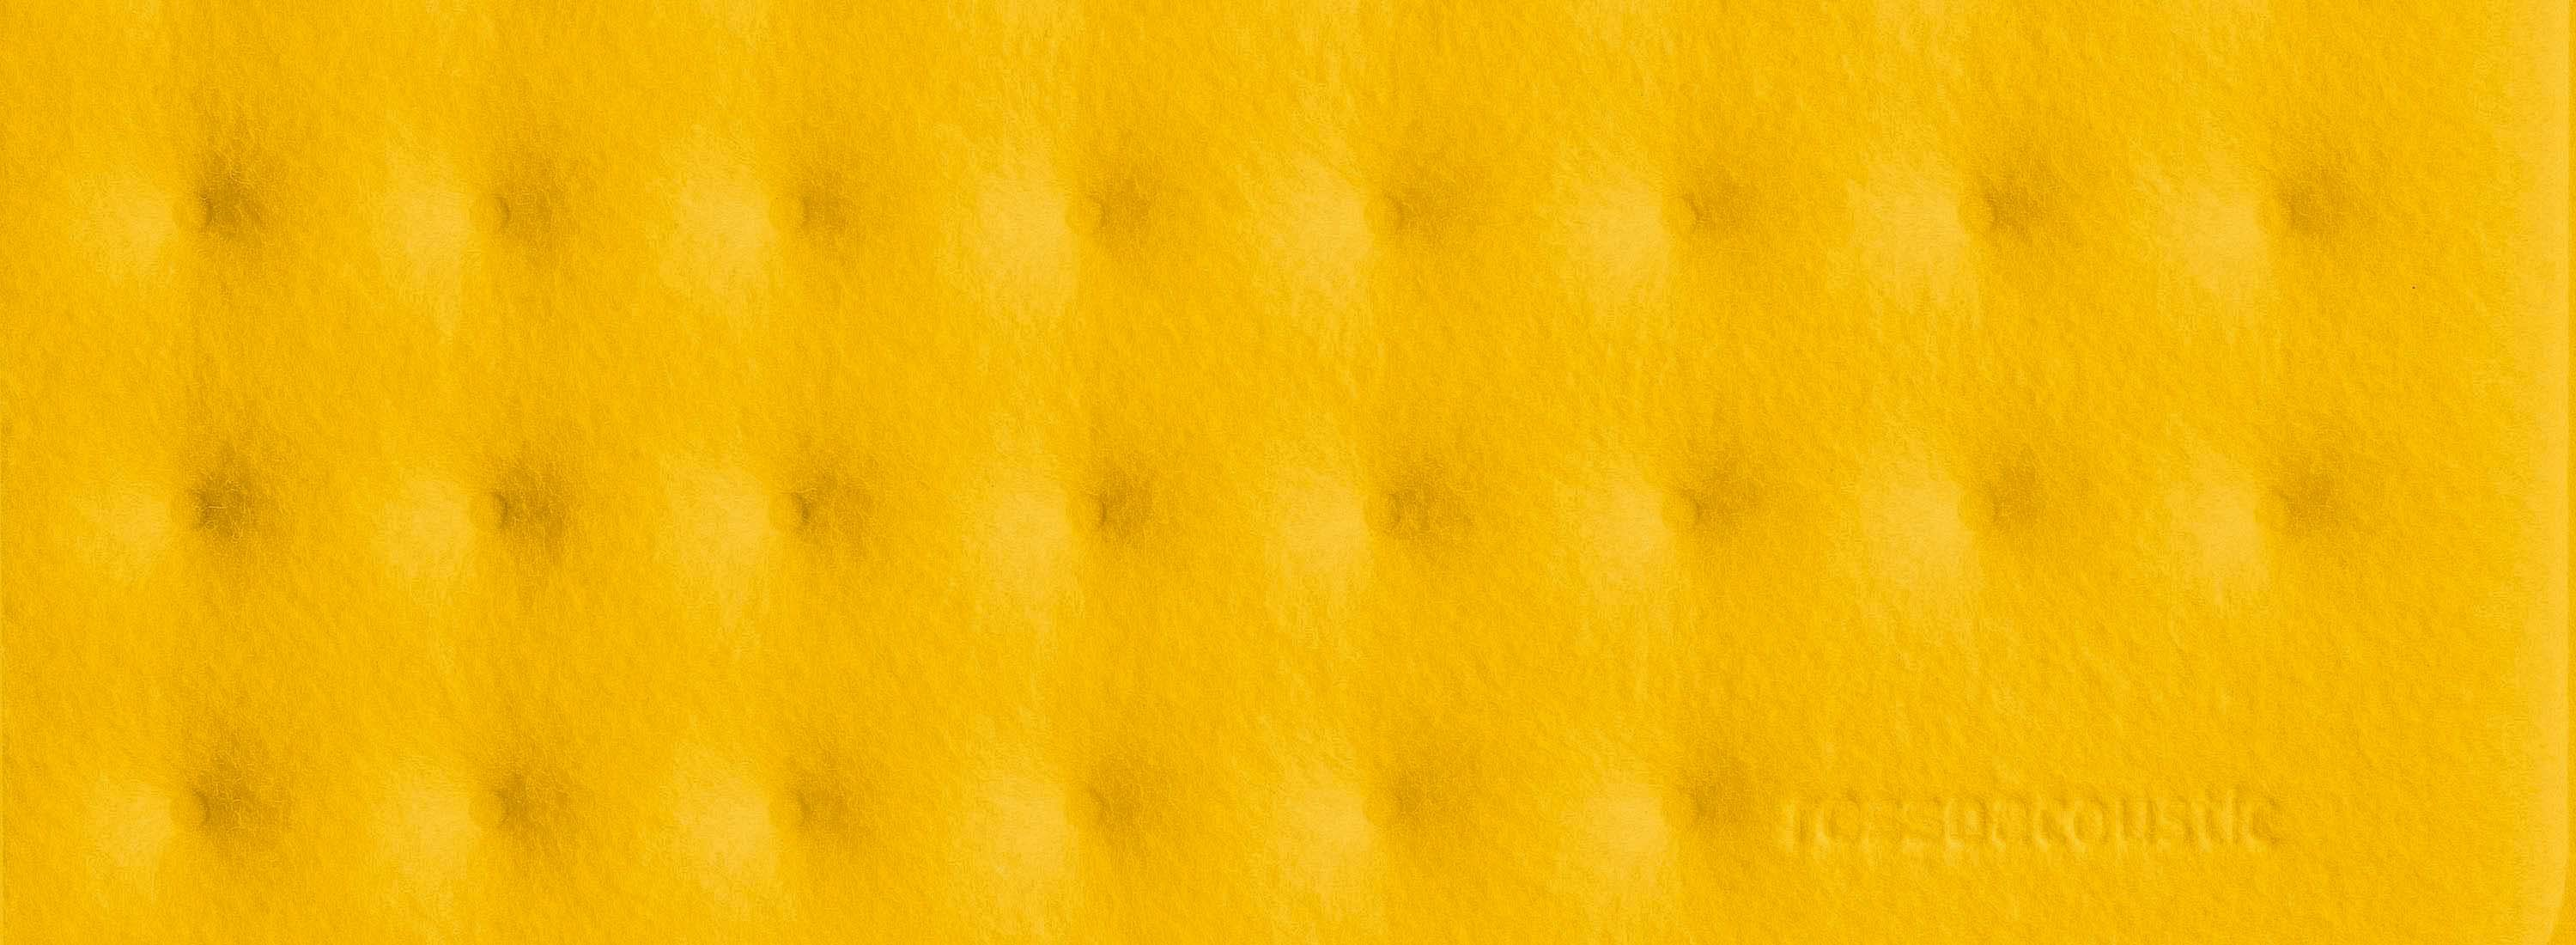 Rossoacoustic PAD R 600 Plus, Ø696 x 60 mm, yellow field